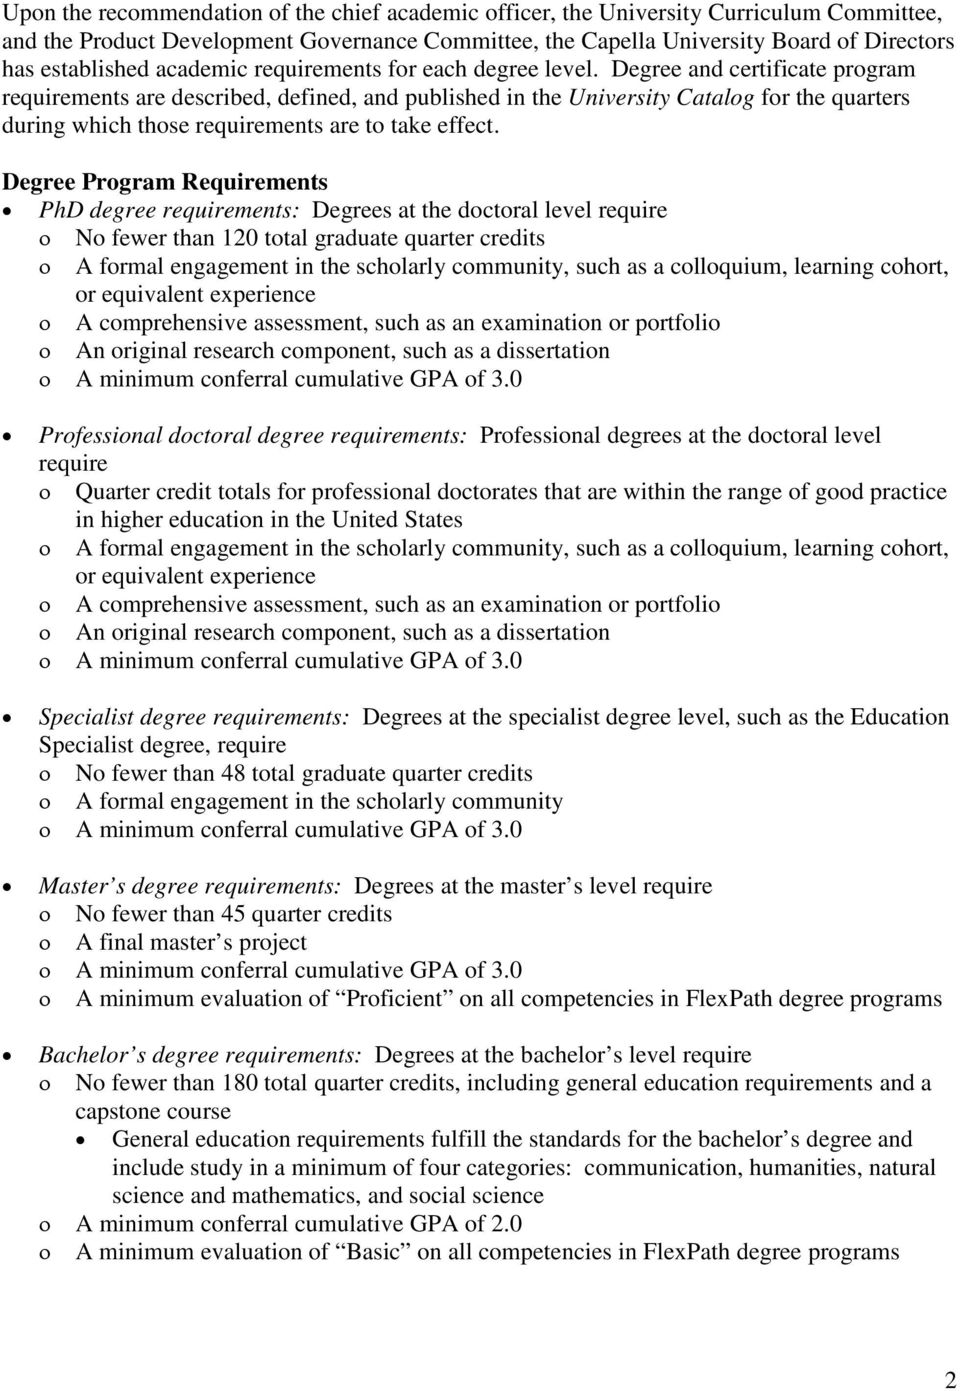 Degree and certificate program requirements are described, defined, and published in the University Catalog for the quarters during which those requirements are to take effect.